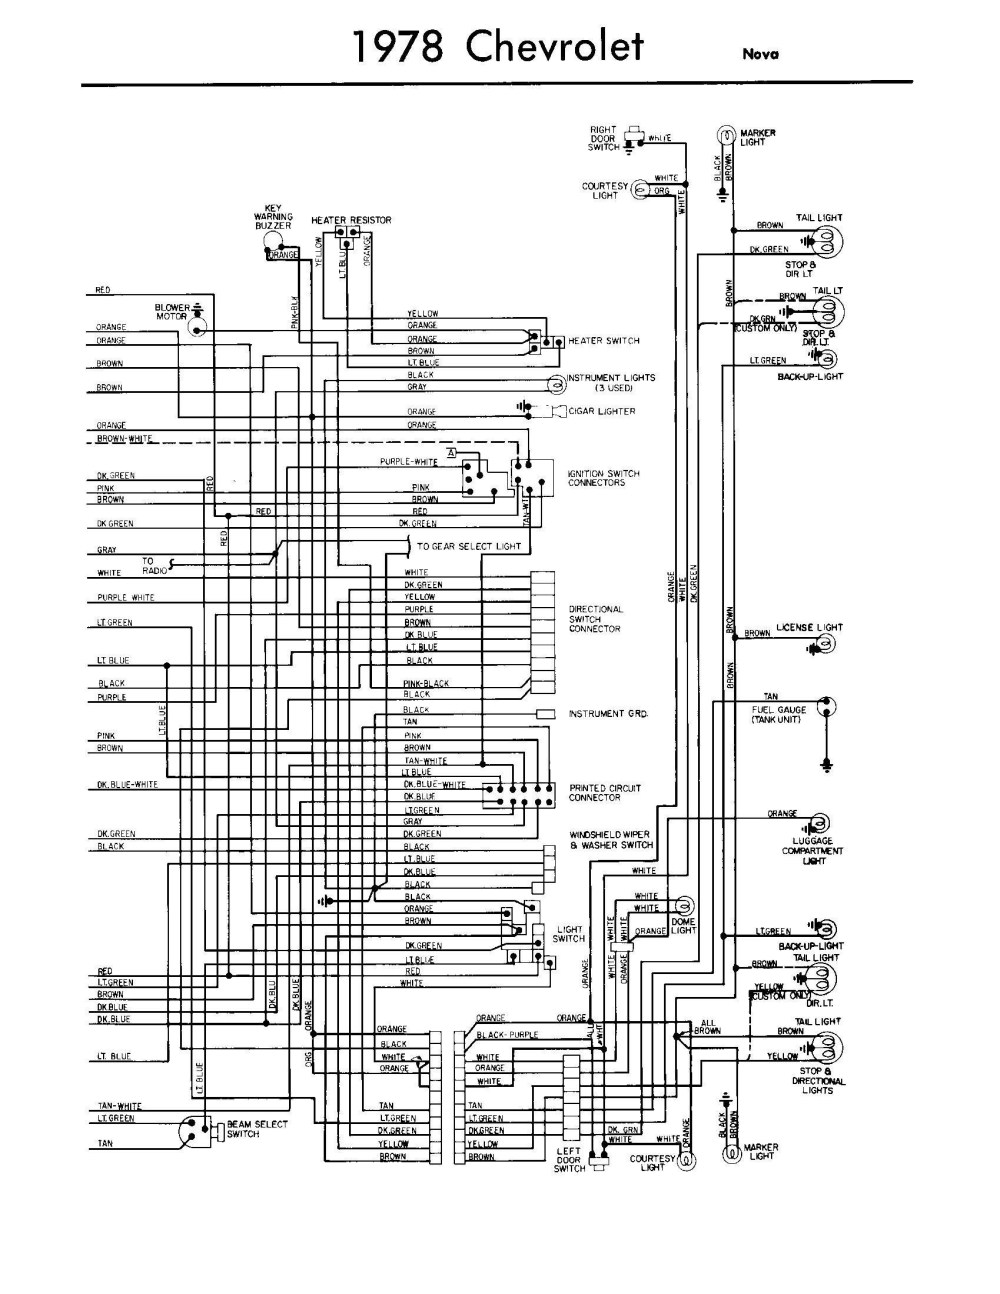 medium resolution of wiring diagram 1978 chevy blower wiring diagram query 1978 chevy luv wiring diagram 1978 chevrolet wiring diagram